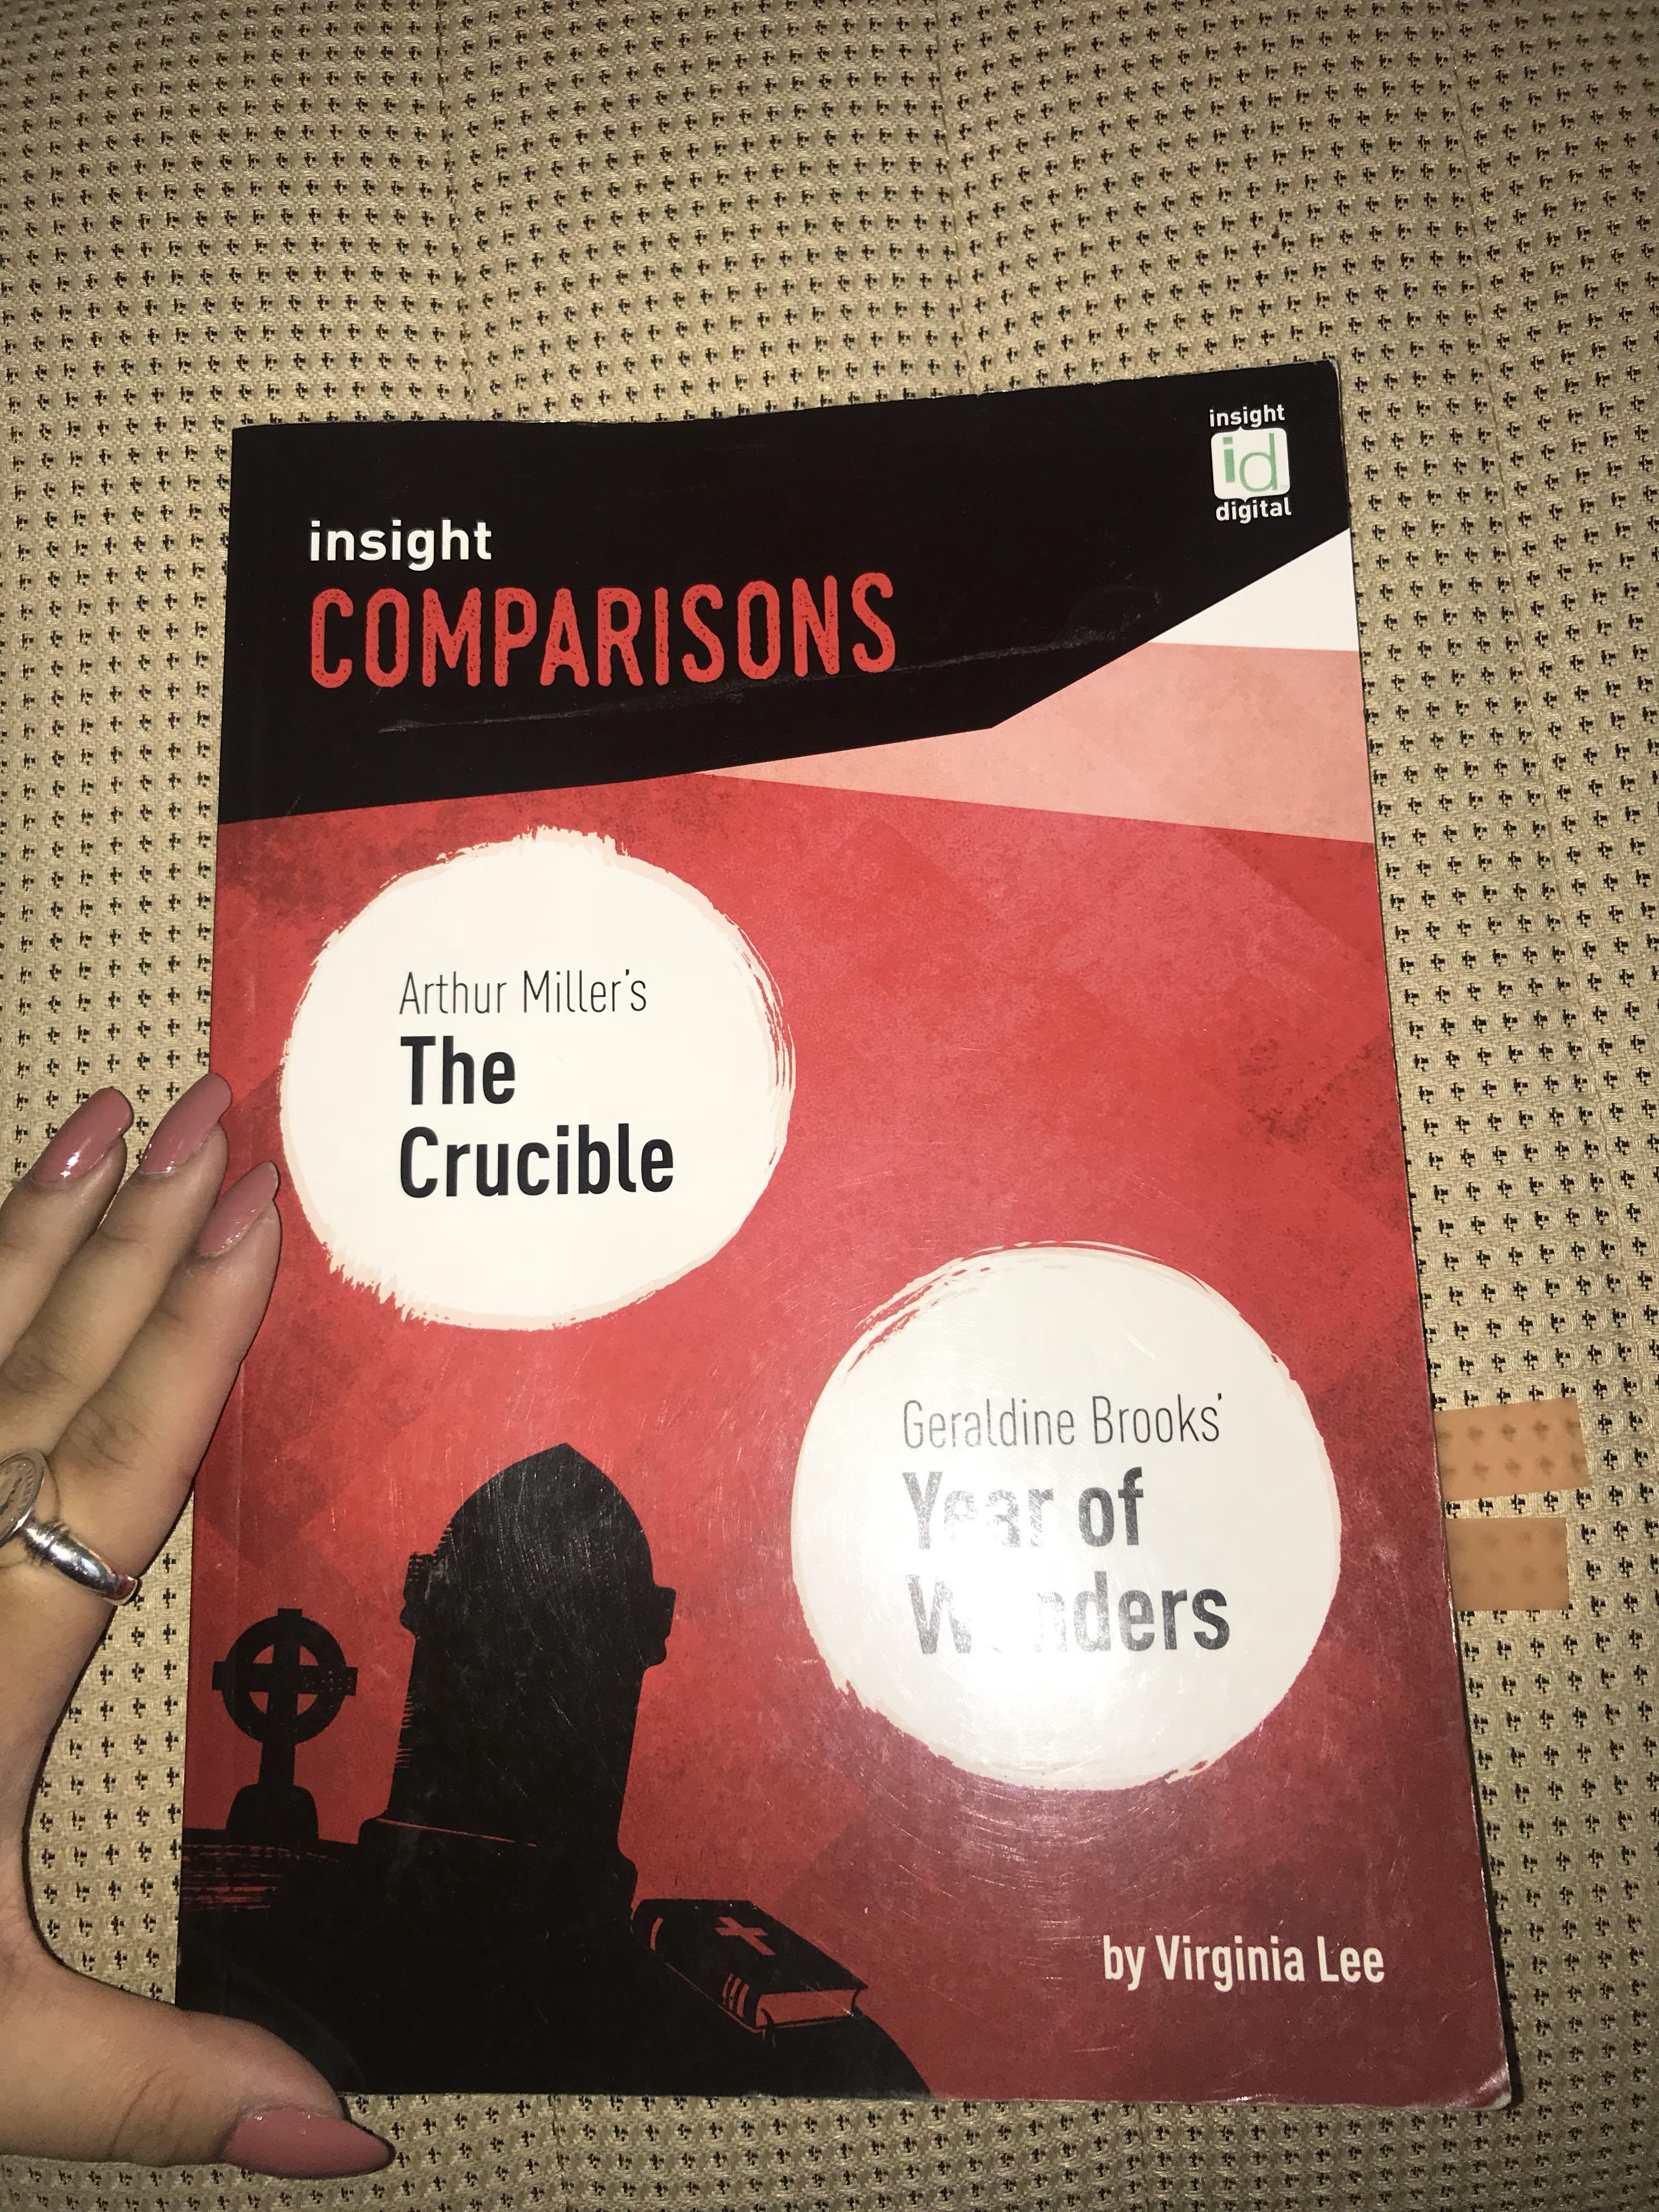 Insight comparison The Crucible and Year of Wonders